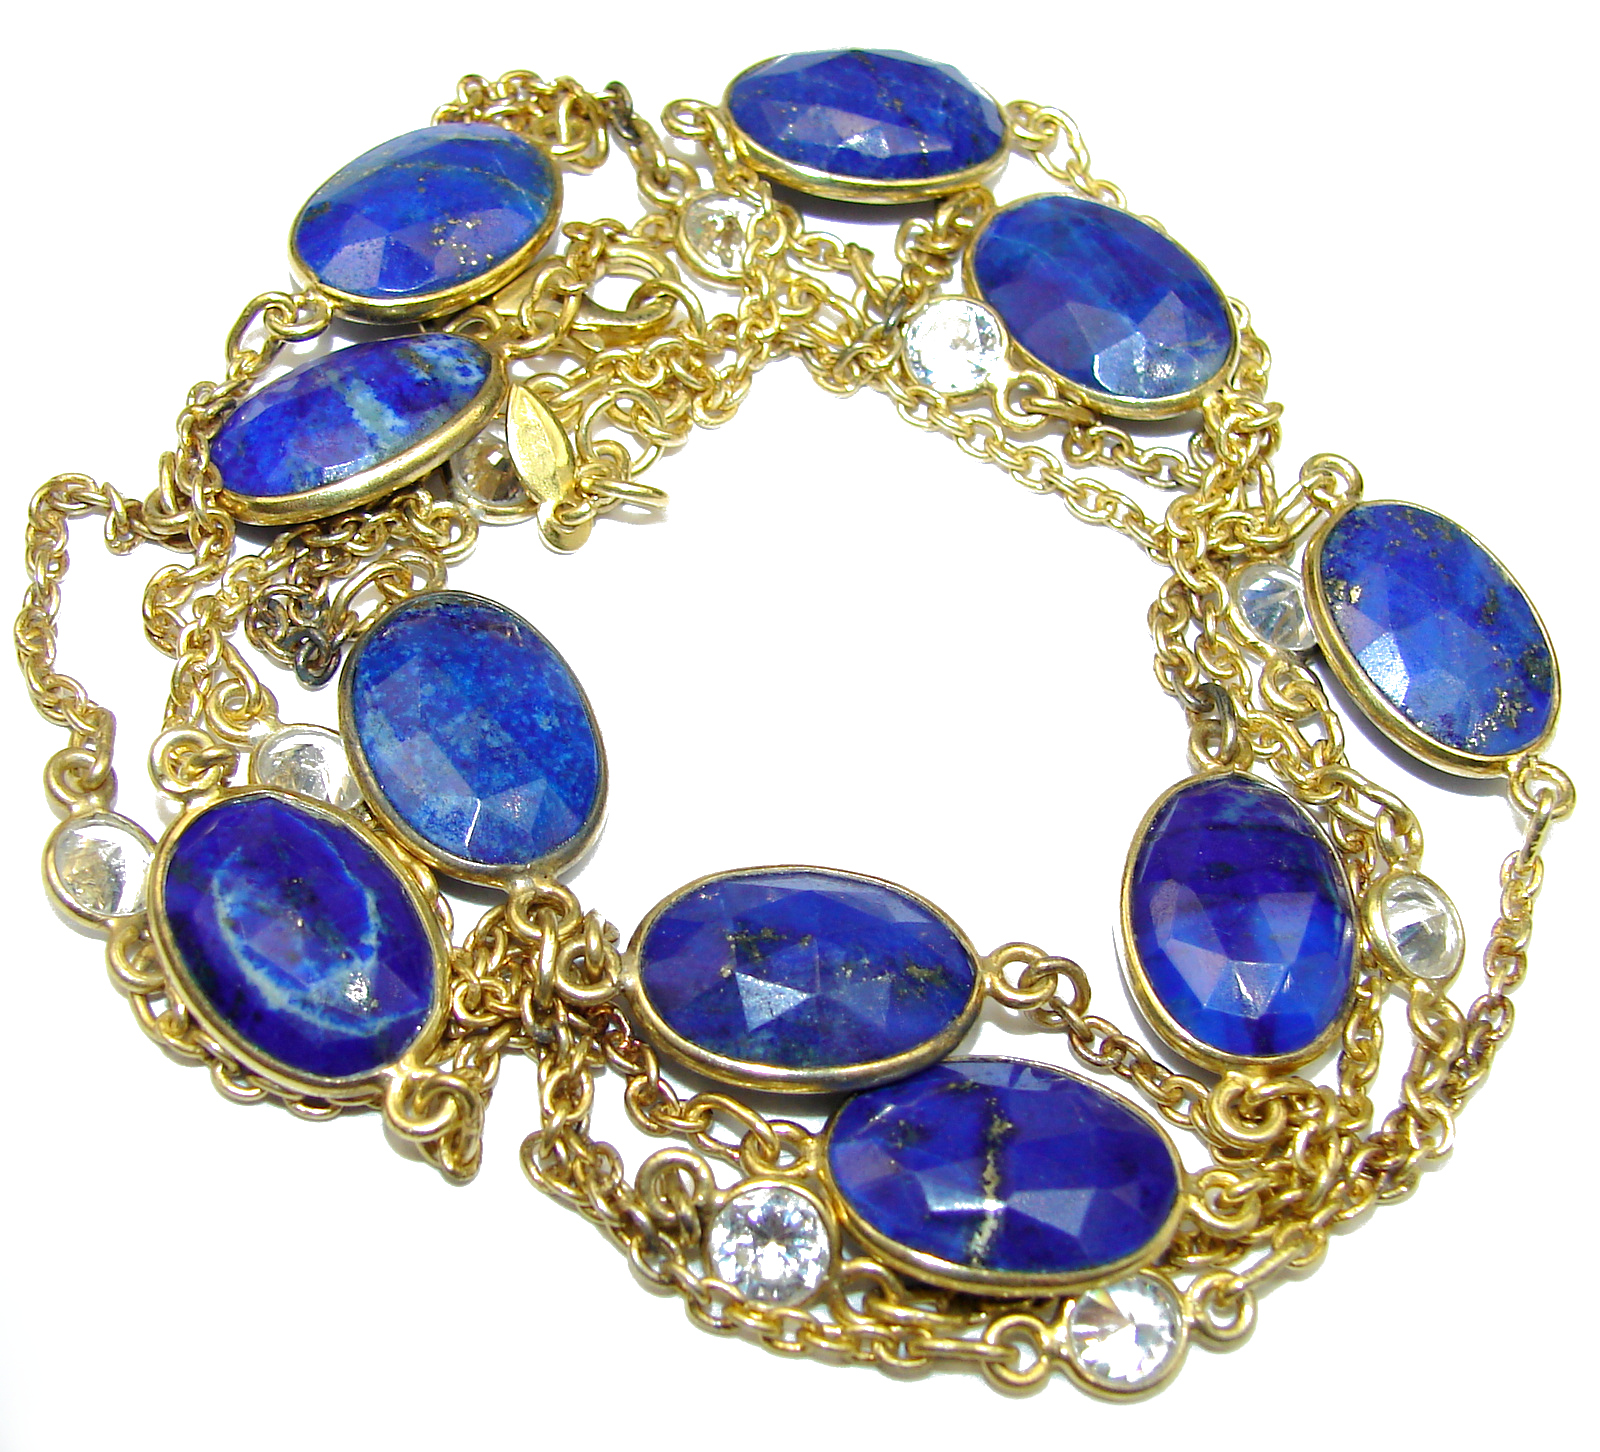 d5986ca8f 36 inches genuine Lapis Lazuli 14K Gold over .925 Sterling Silver Station  Necklace